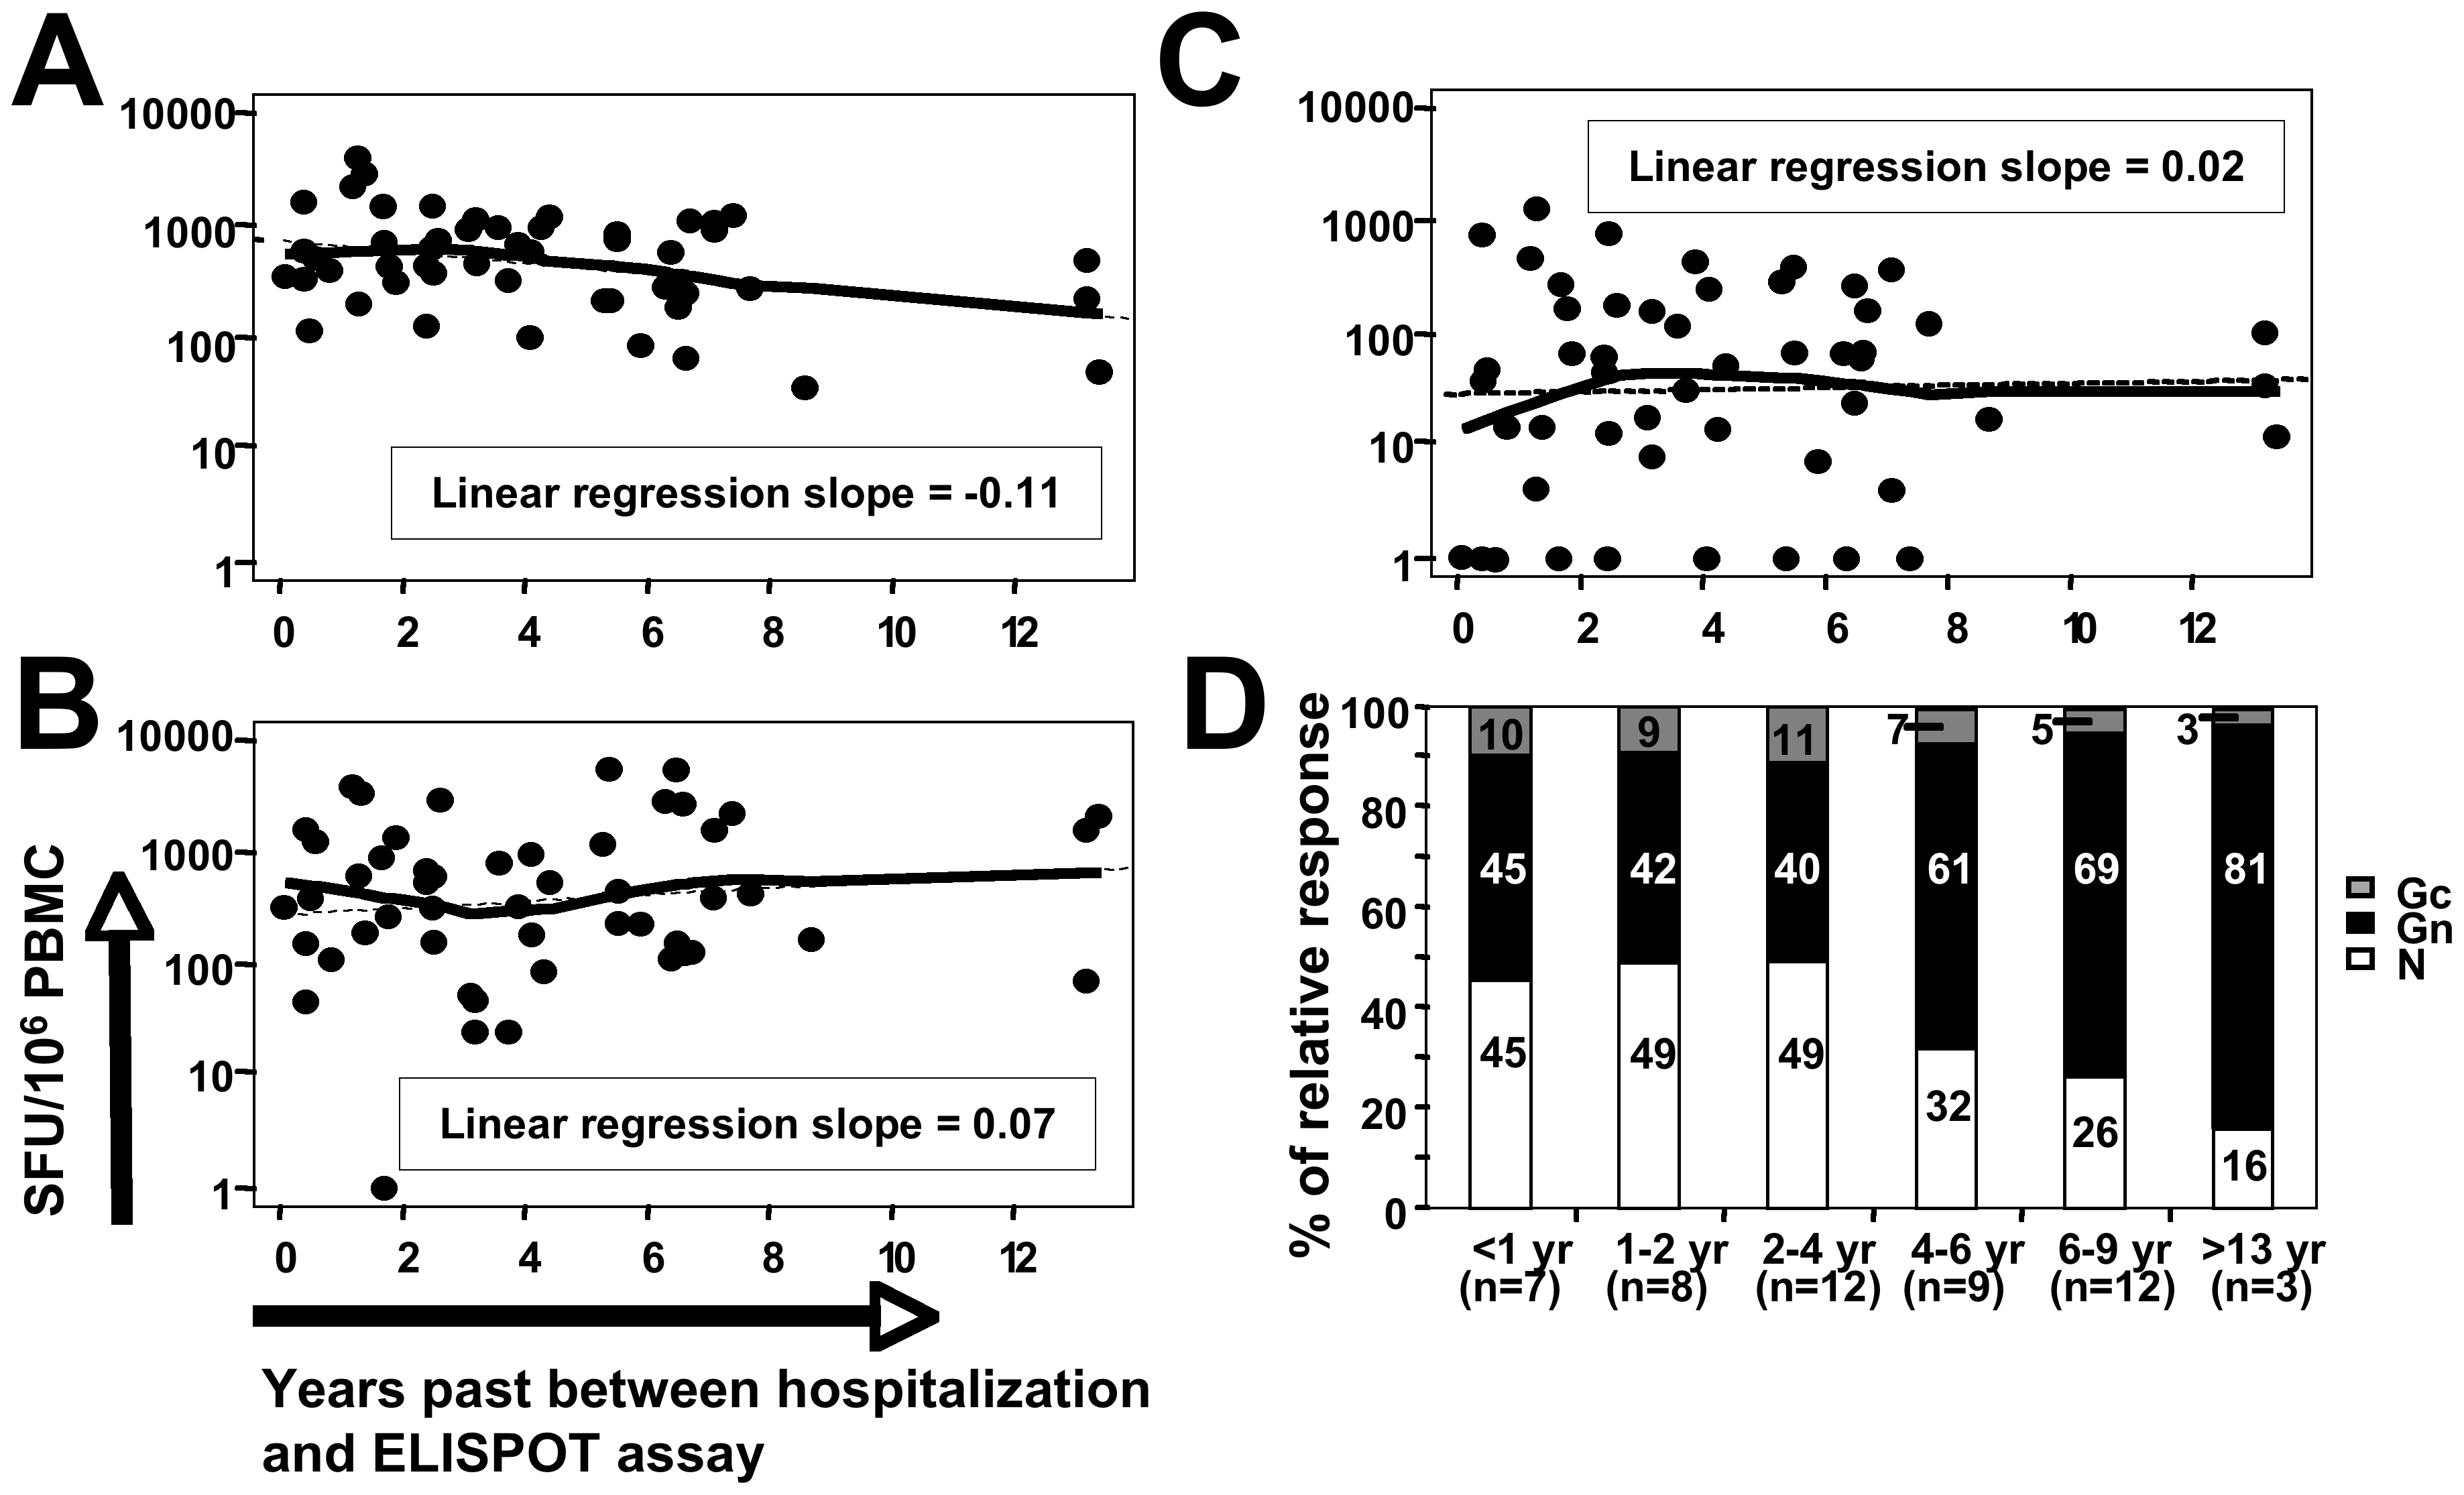 Relative contributions of antigen-specific memory T-cell responses over time.